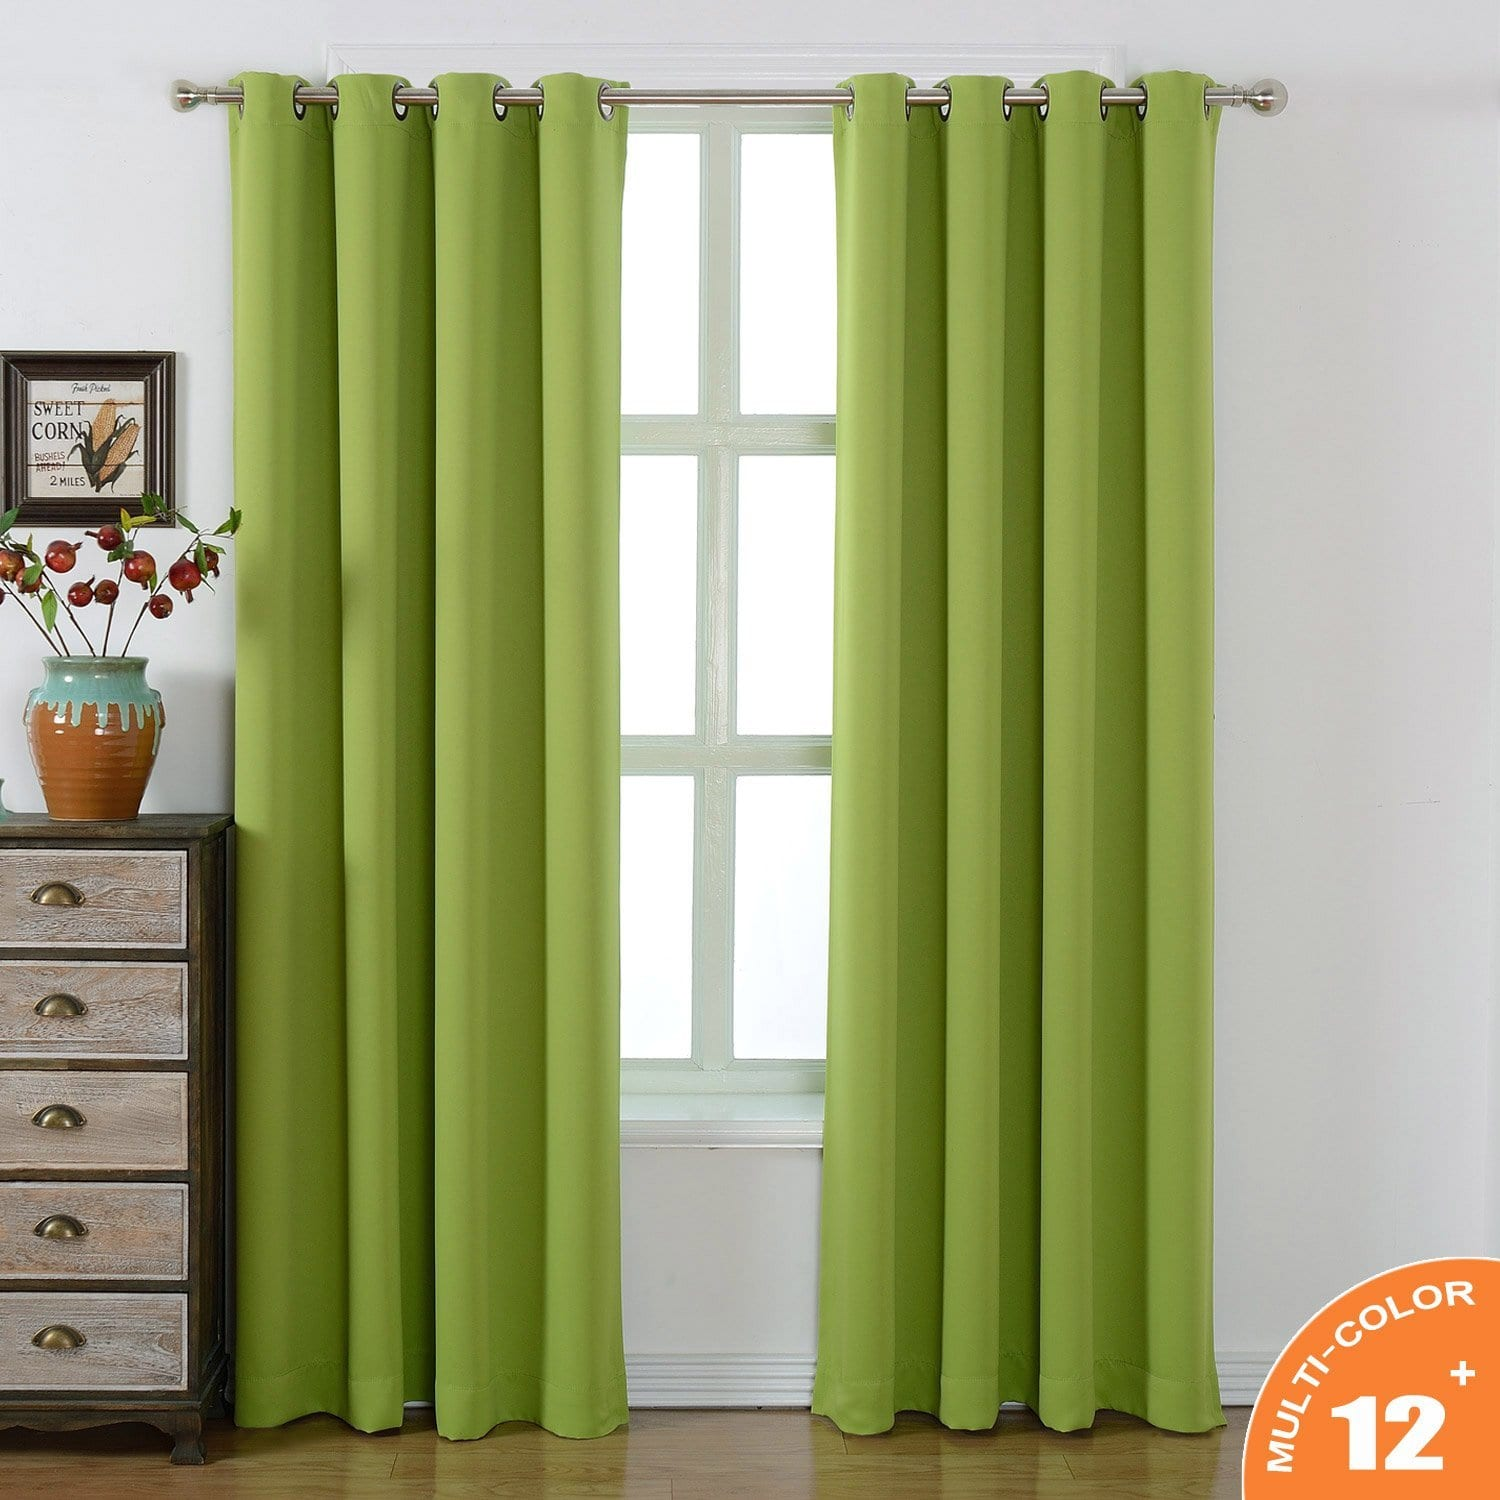 Most Buy List Of Best Sliding Glass Door Curtains With Reviews Top